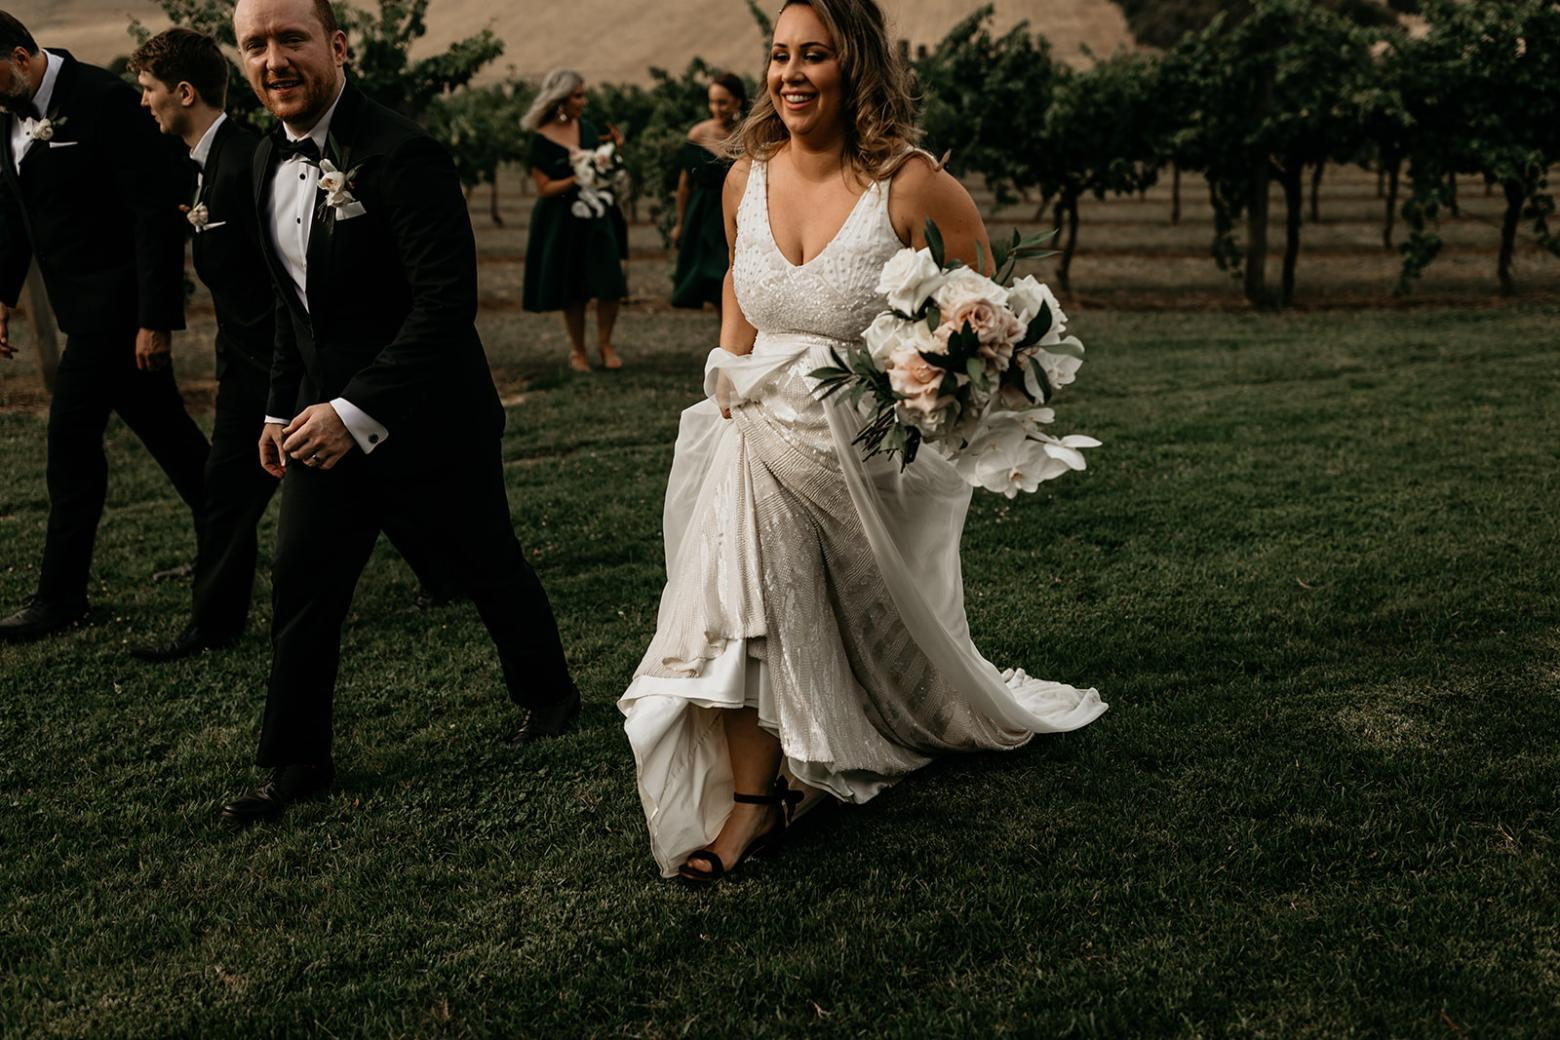 Real bride Liana wore the Luxe Fontanne wedding dress by Karen Willis Holmes.